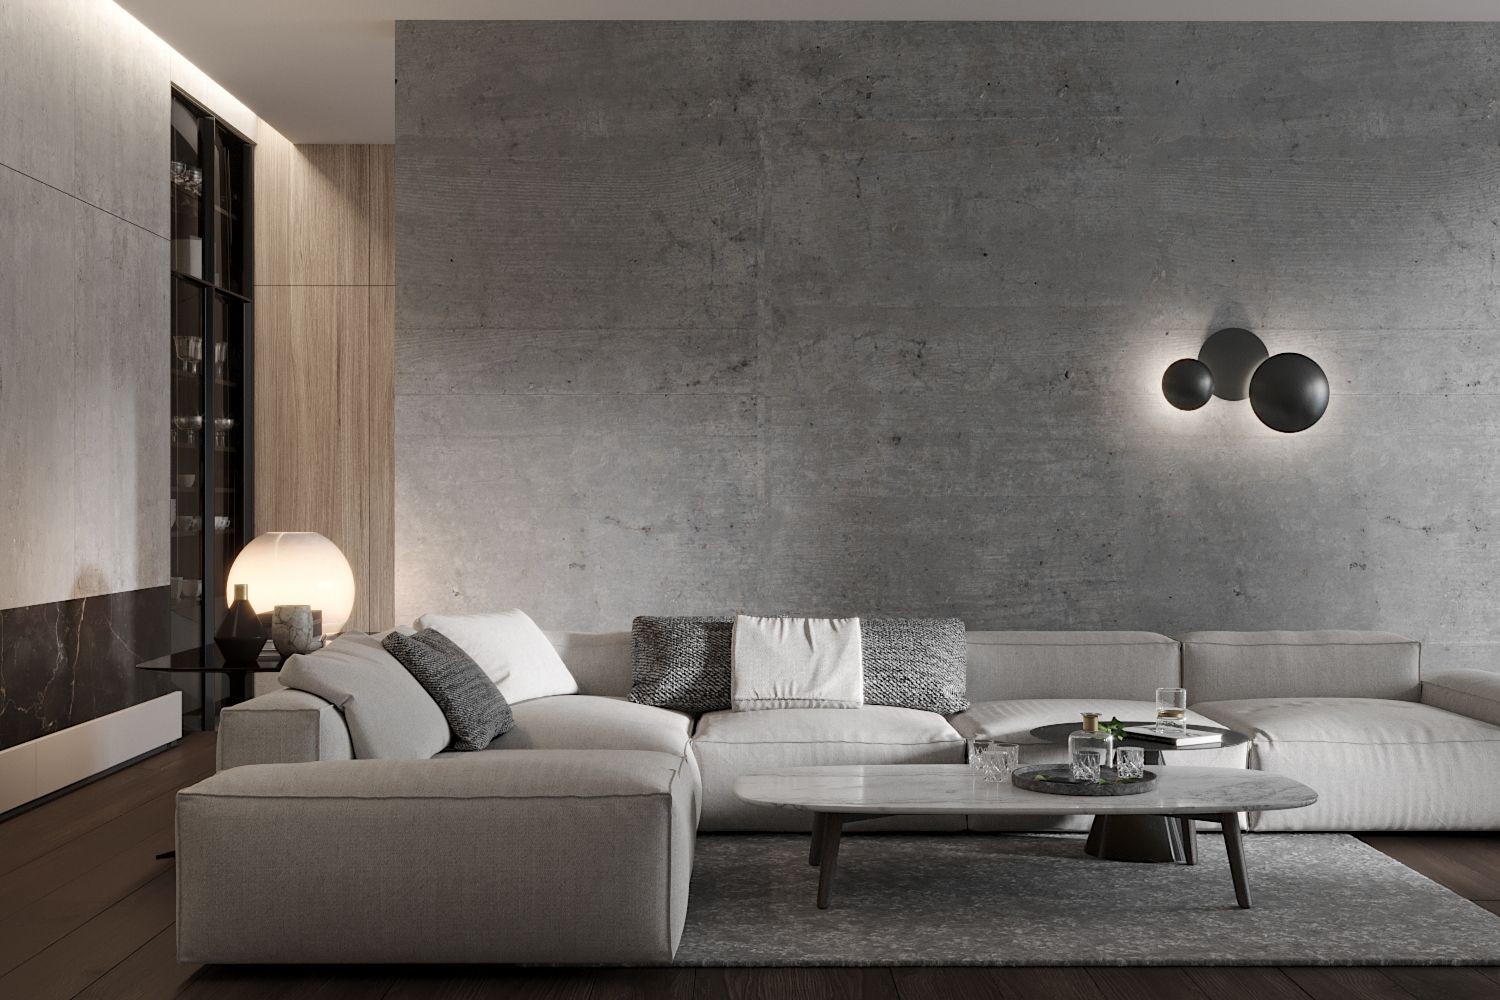 The Wall Of Concrete In Living Room Gives The Room An Industrial Chic Industrial Chic Living Room Concrete Living Room Concrete Walls Bedroom